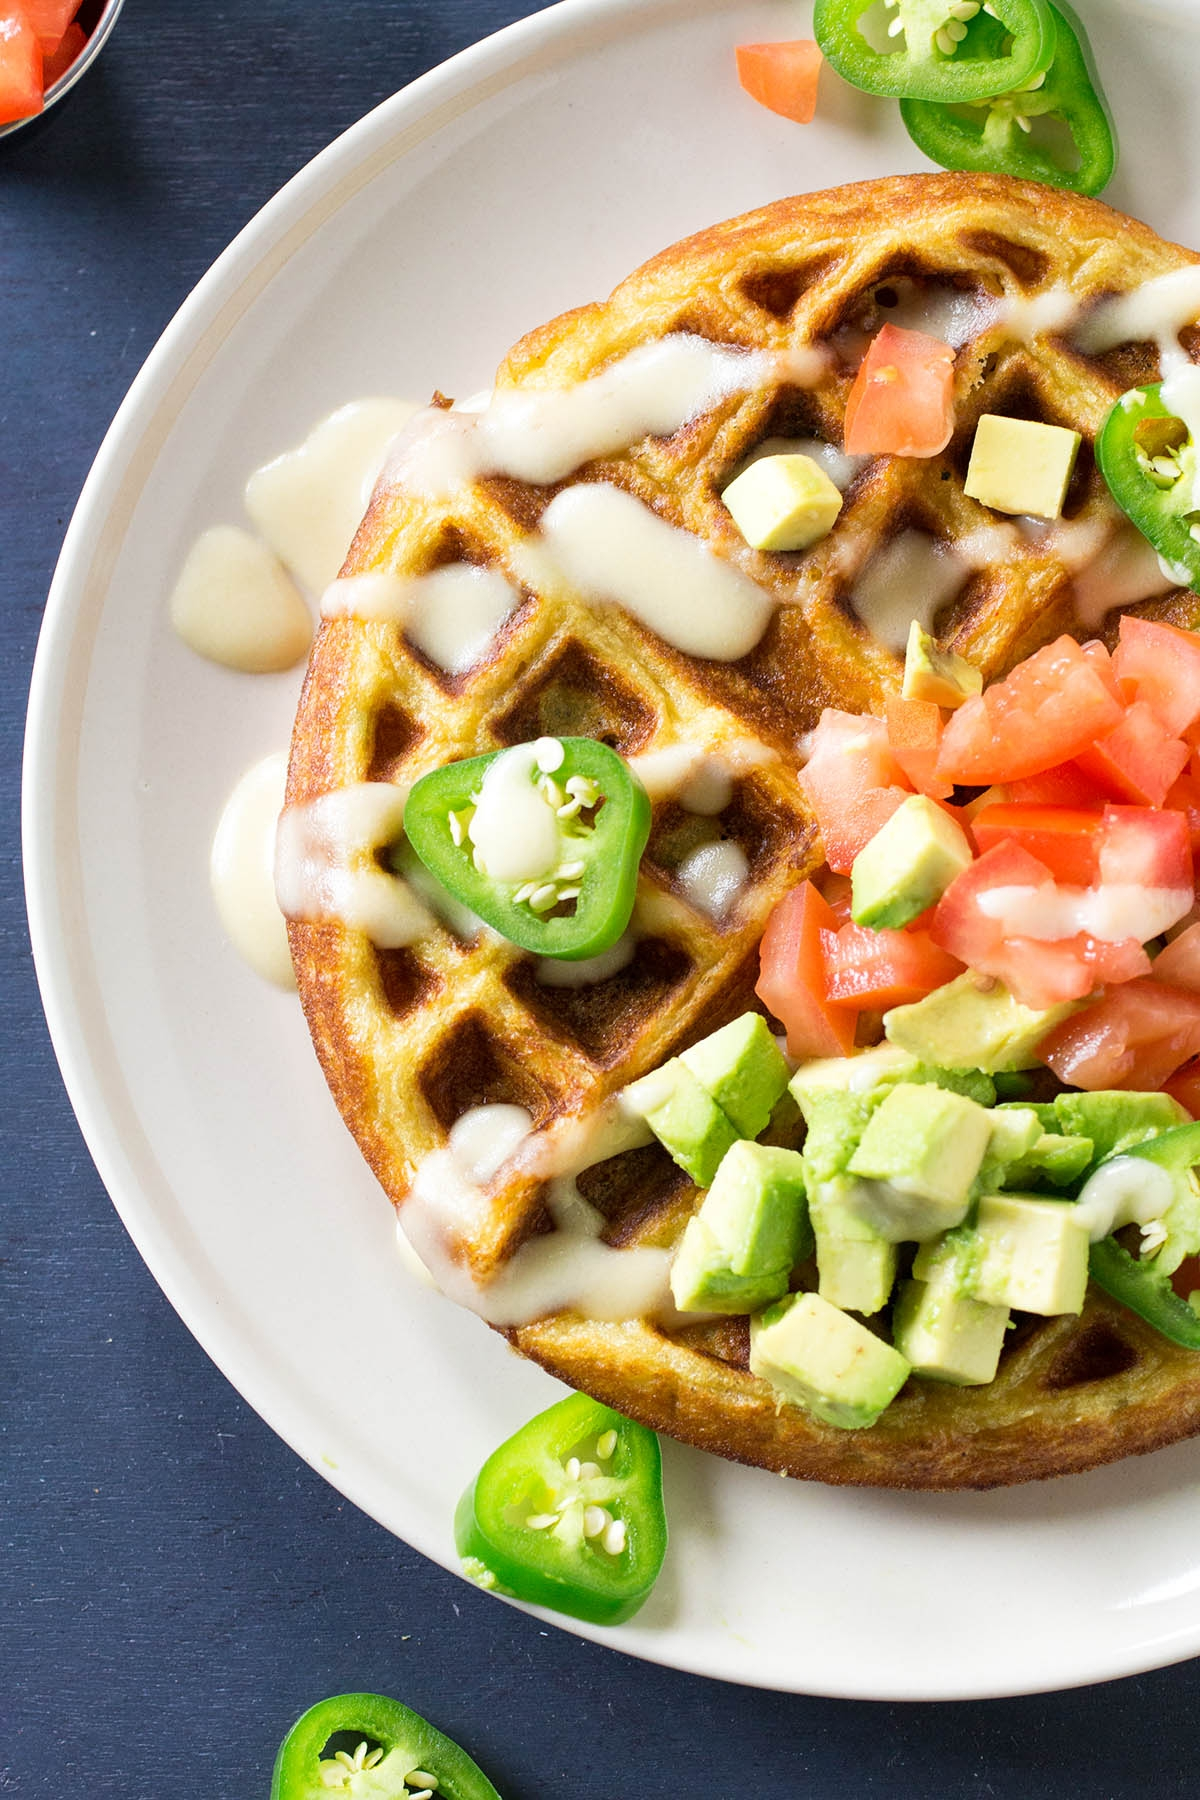 Savory Jalapeno-Beer Cheese Waffles